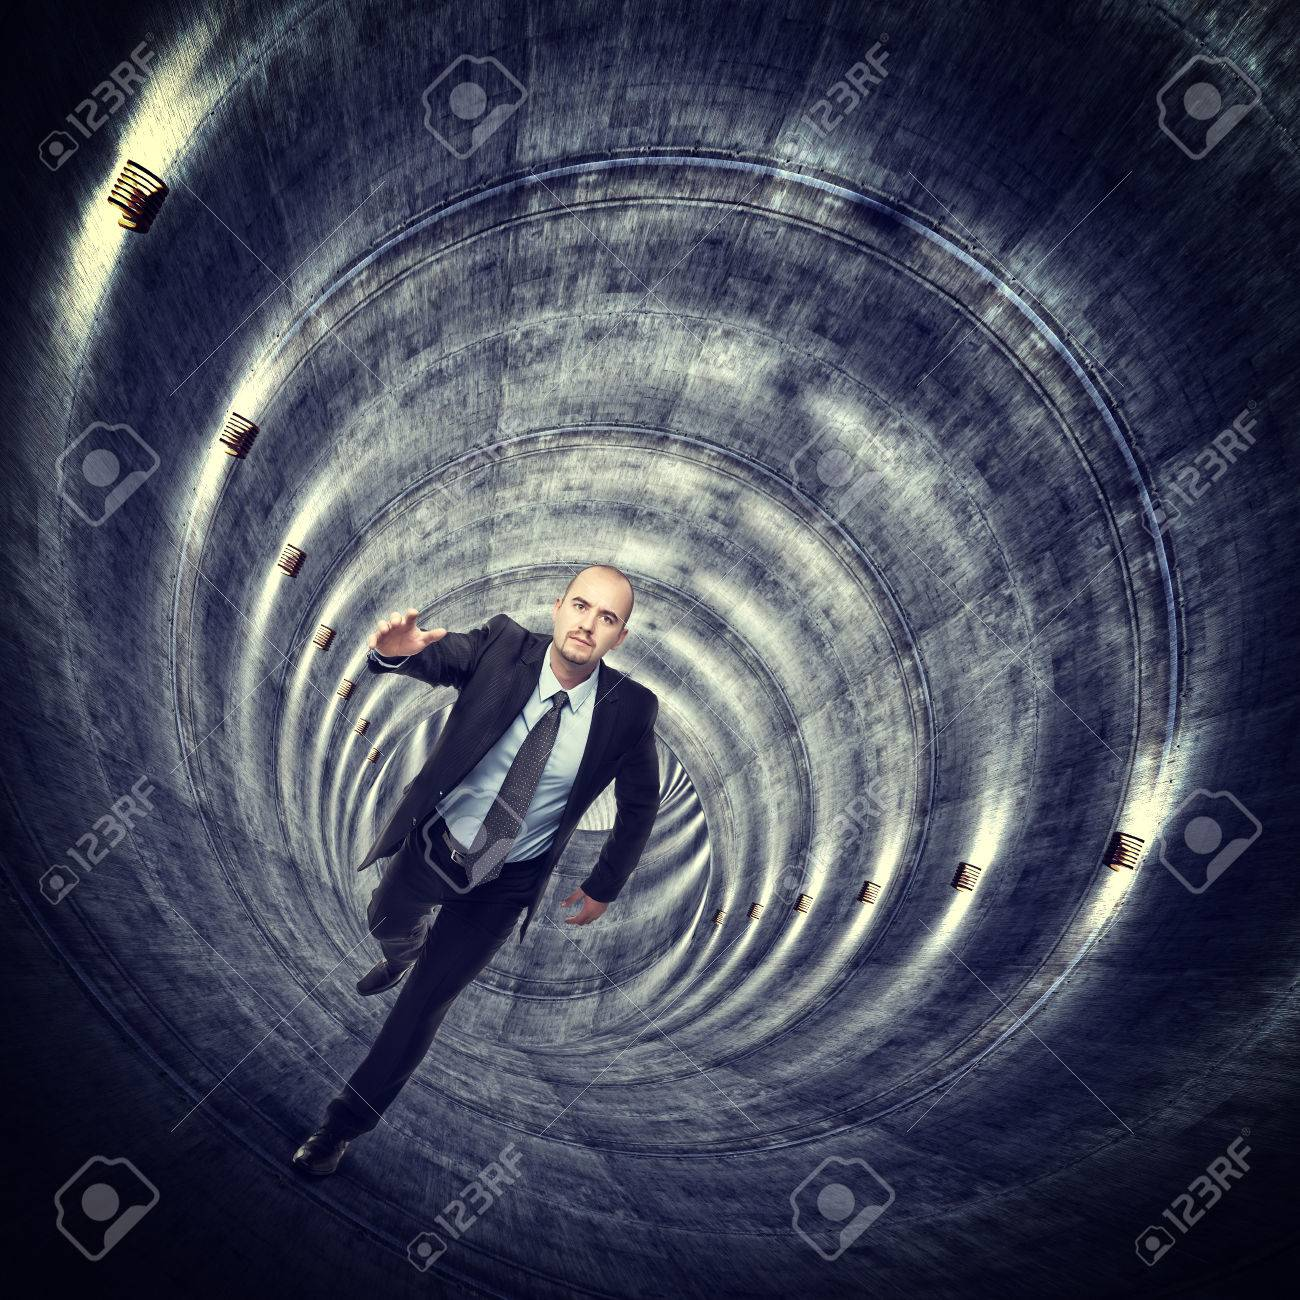 running man in concrete long tunnel Stock Photo - 30026547